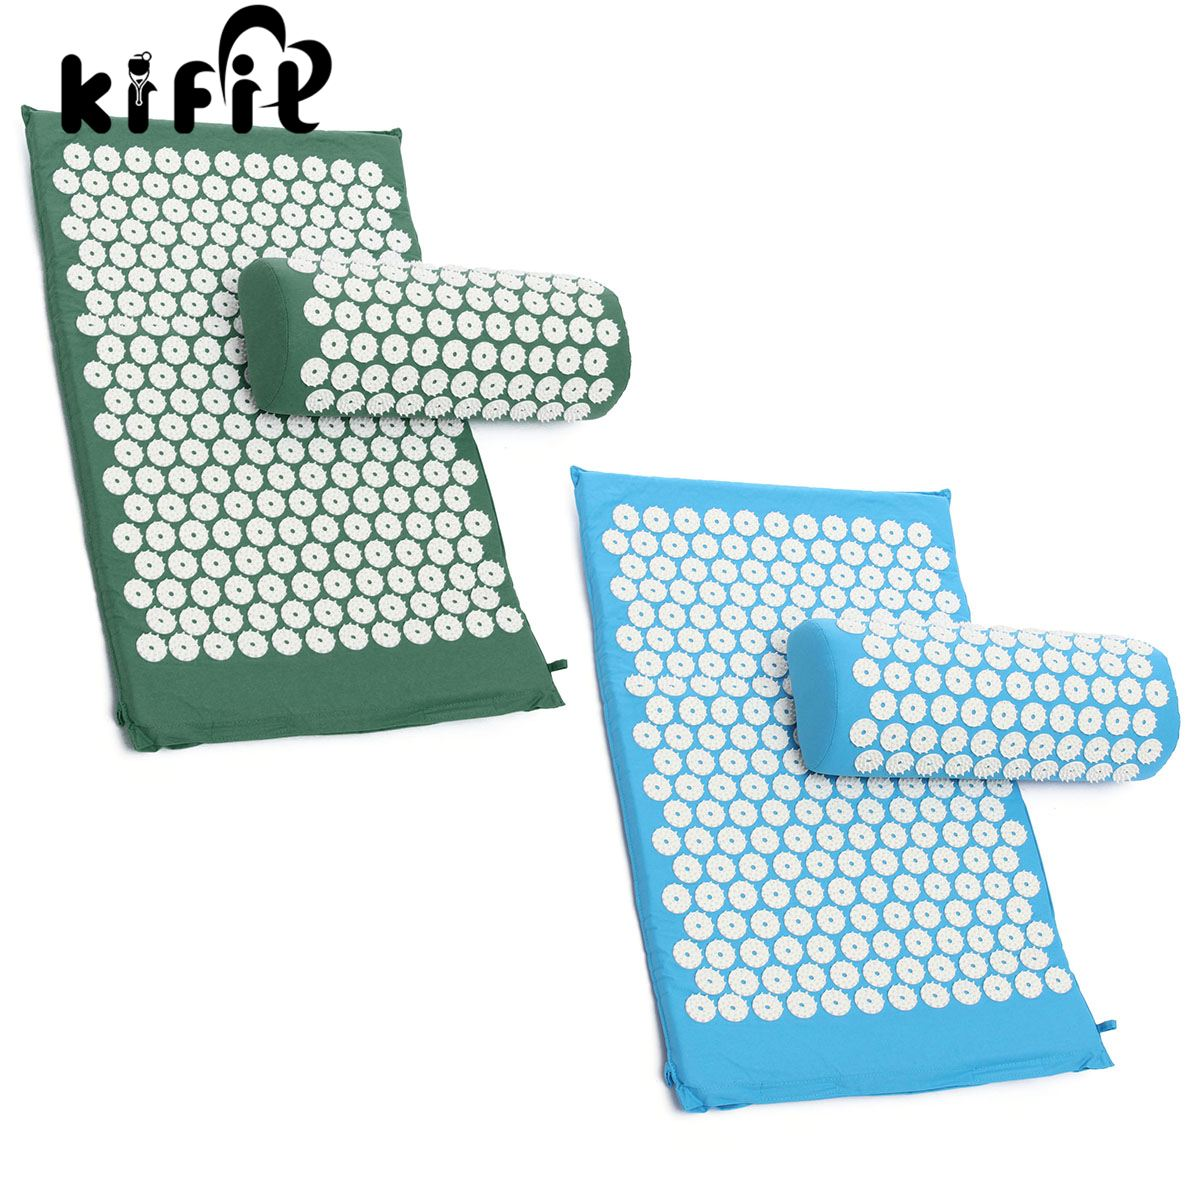 KIFIT Massager Cushion Acupressure Mat And Pillow Bed Meditation Relief Stress Pain Nail Yoga Health Care Tool mohd mazid and taqi ahmed khan interaction between auxin and vigna radiata l under cadmium stress